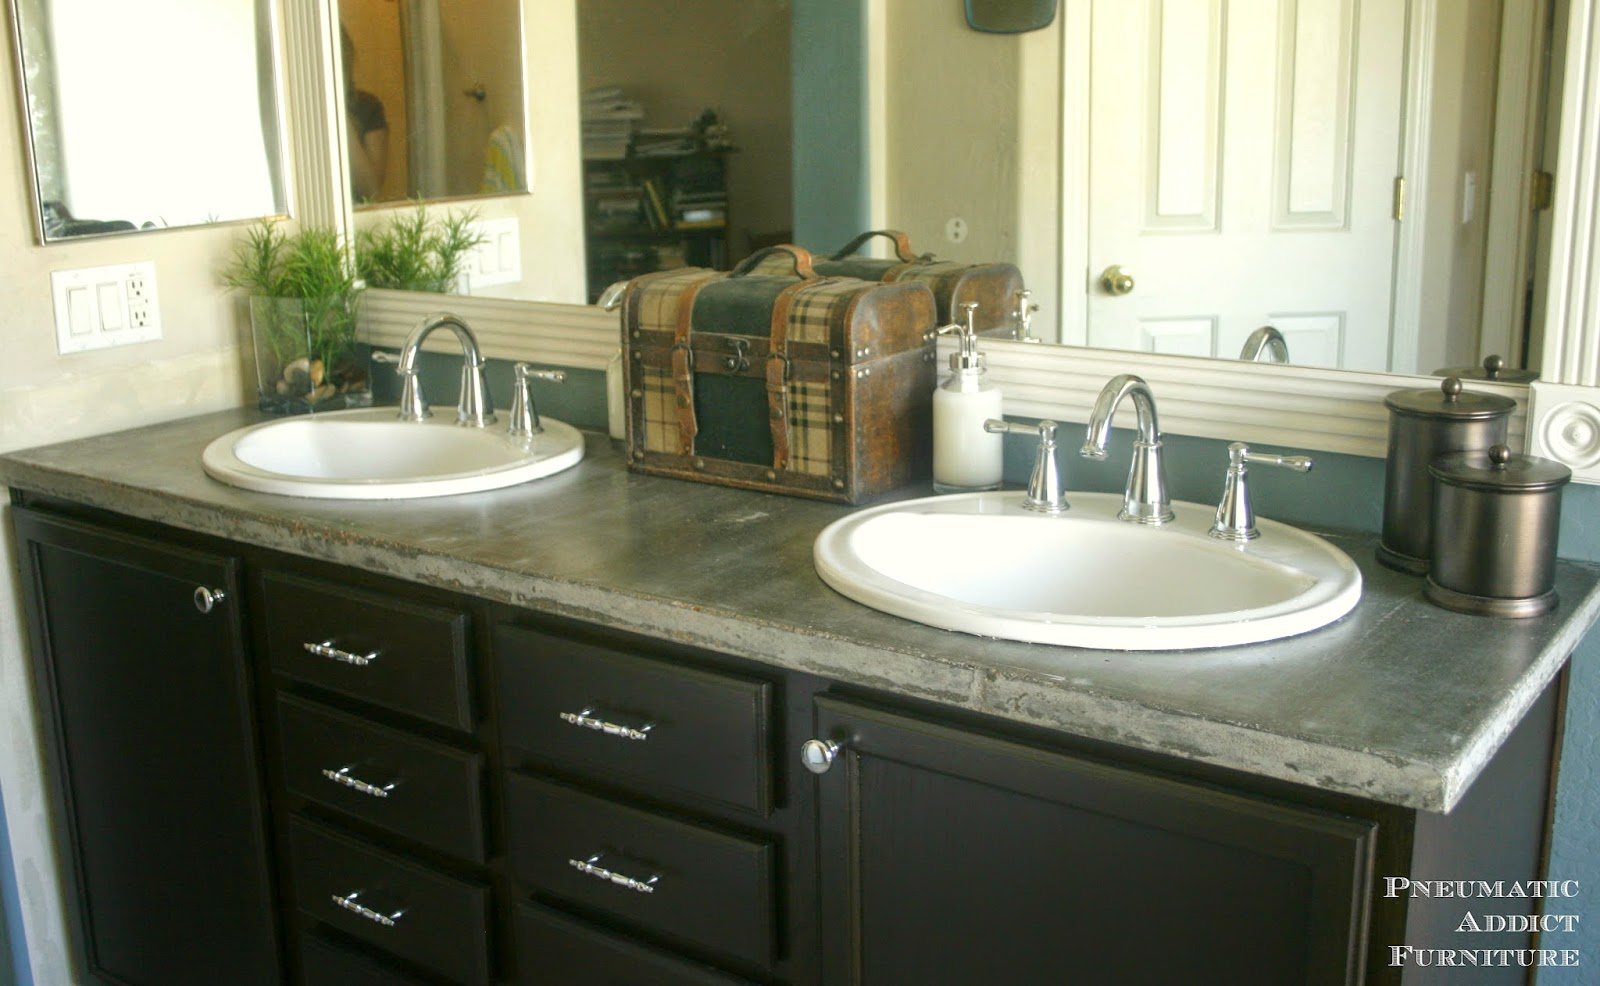 DIY Concrete Countertop With Sink Openings | Pneumatic Addict